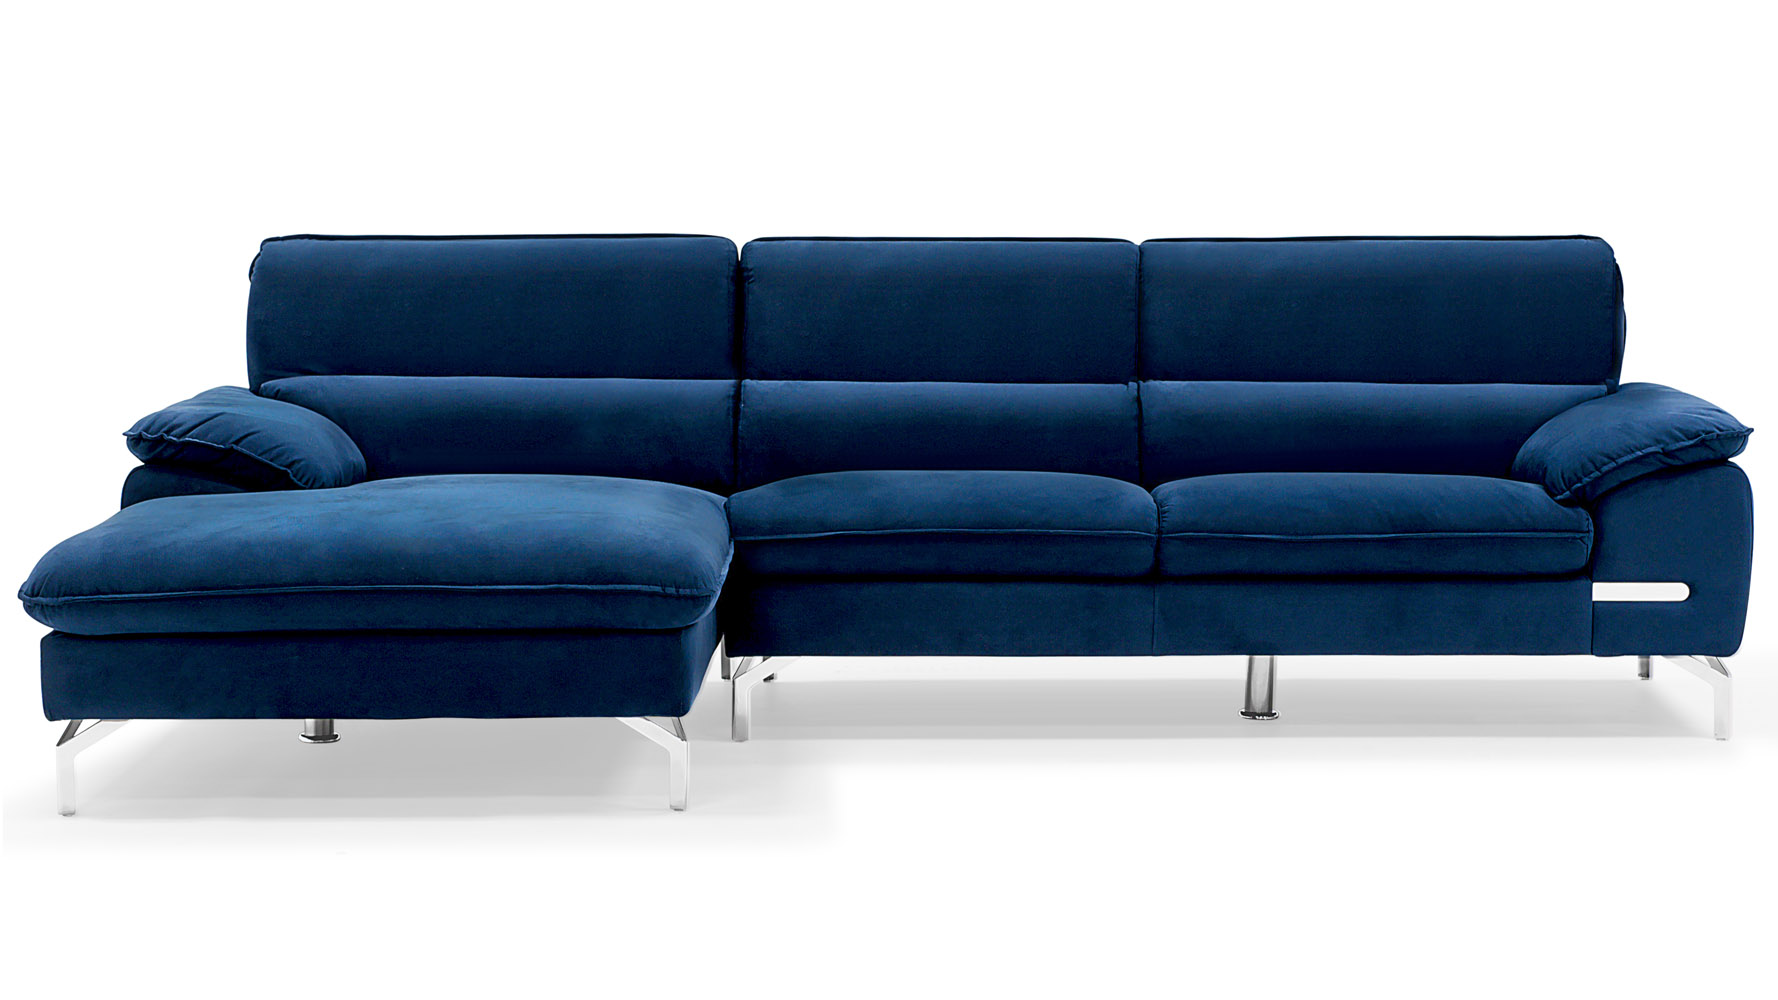 cindy crawford sectional sleeper sofa by blue sectional sofa with chaise cindy crawford home